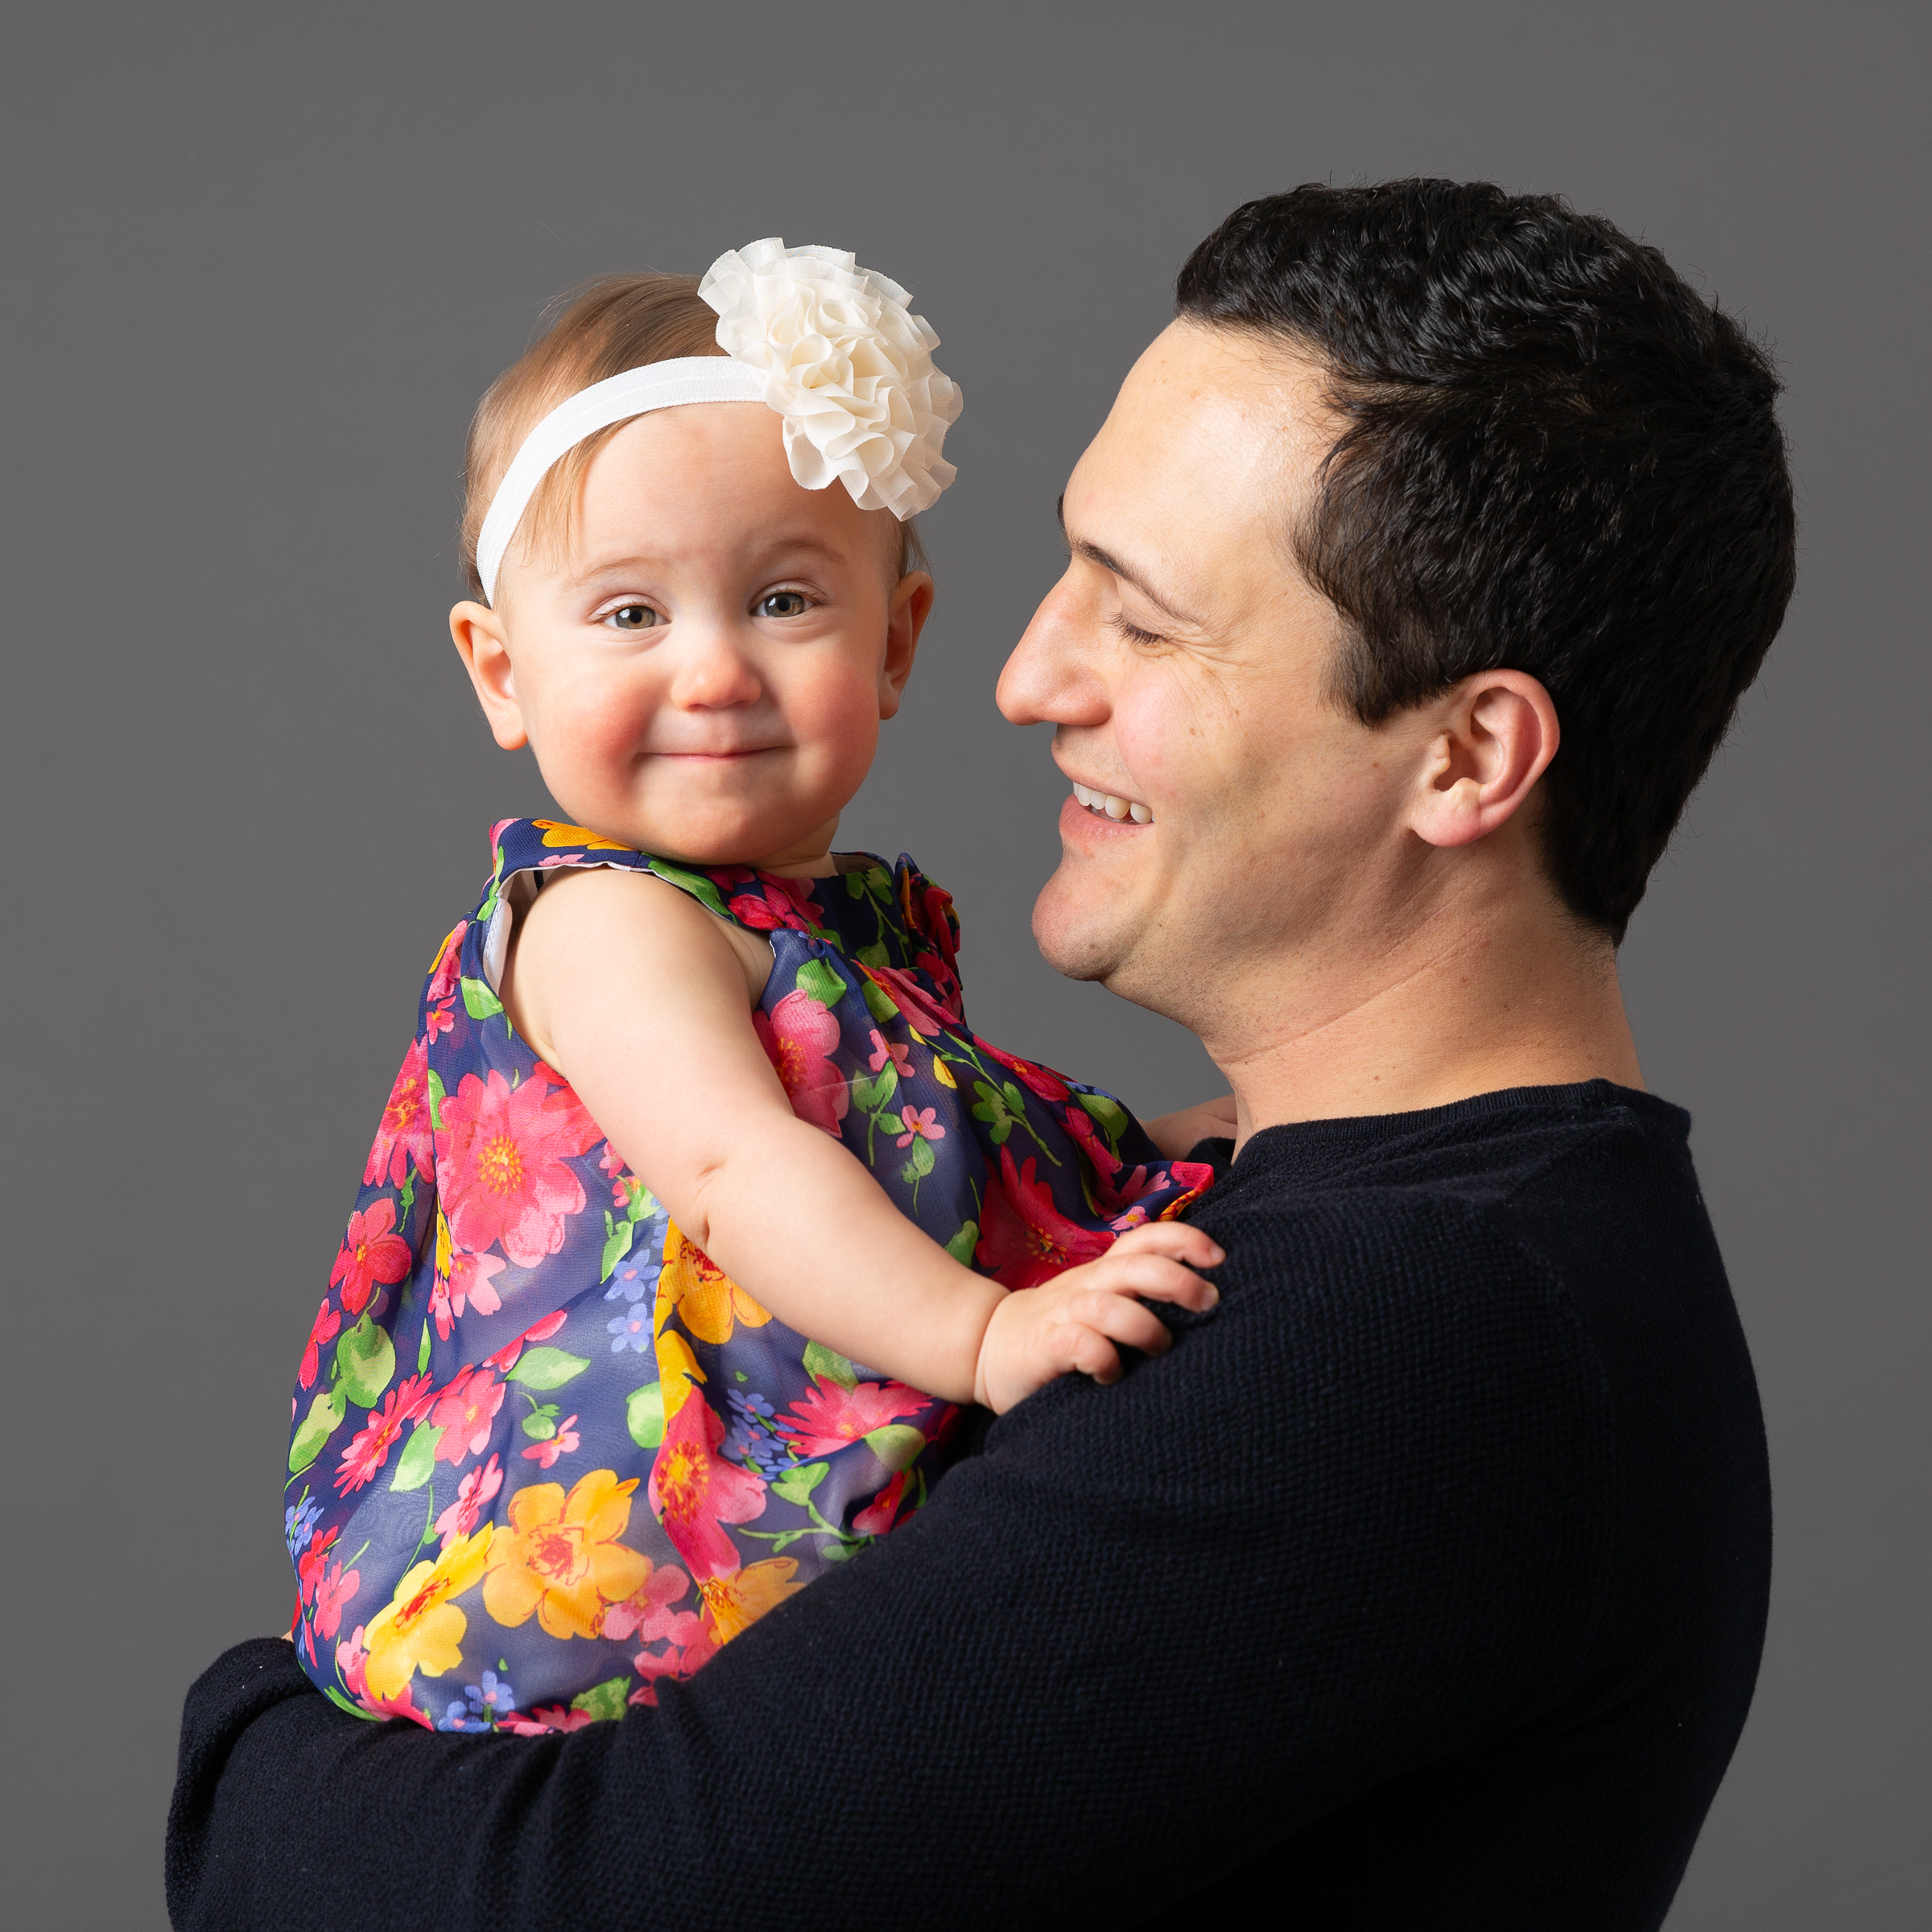 father-baby-daughter-studio-portrait-east-london.jpg